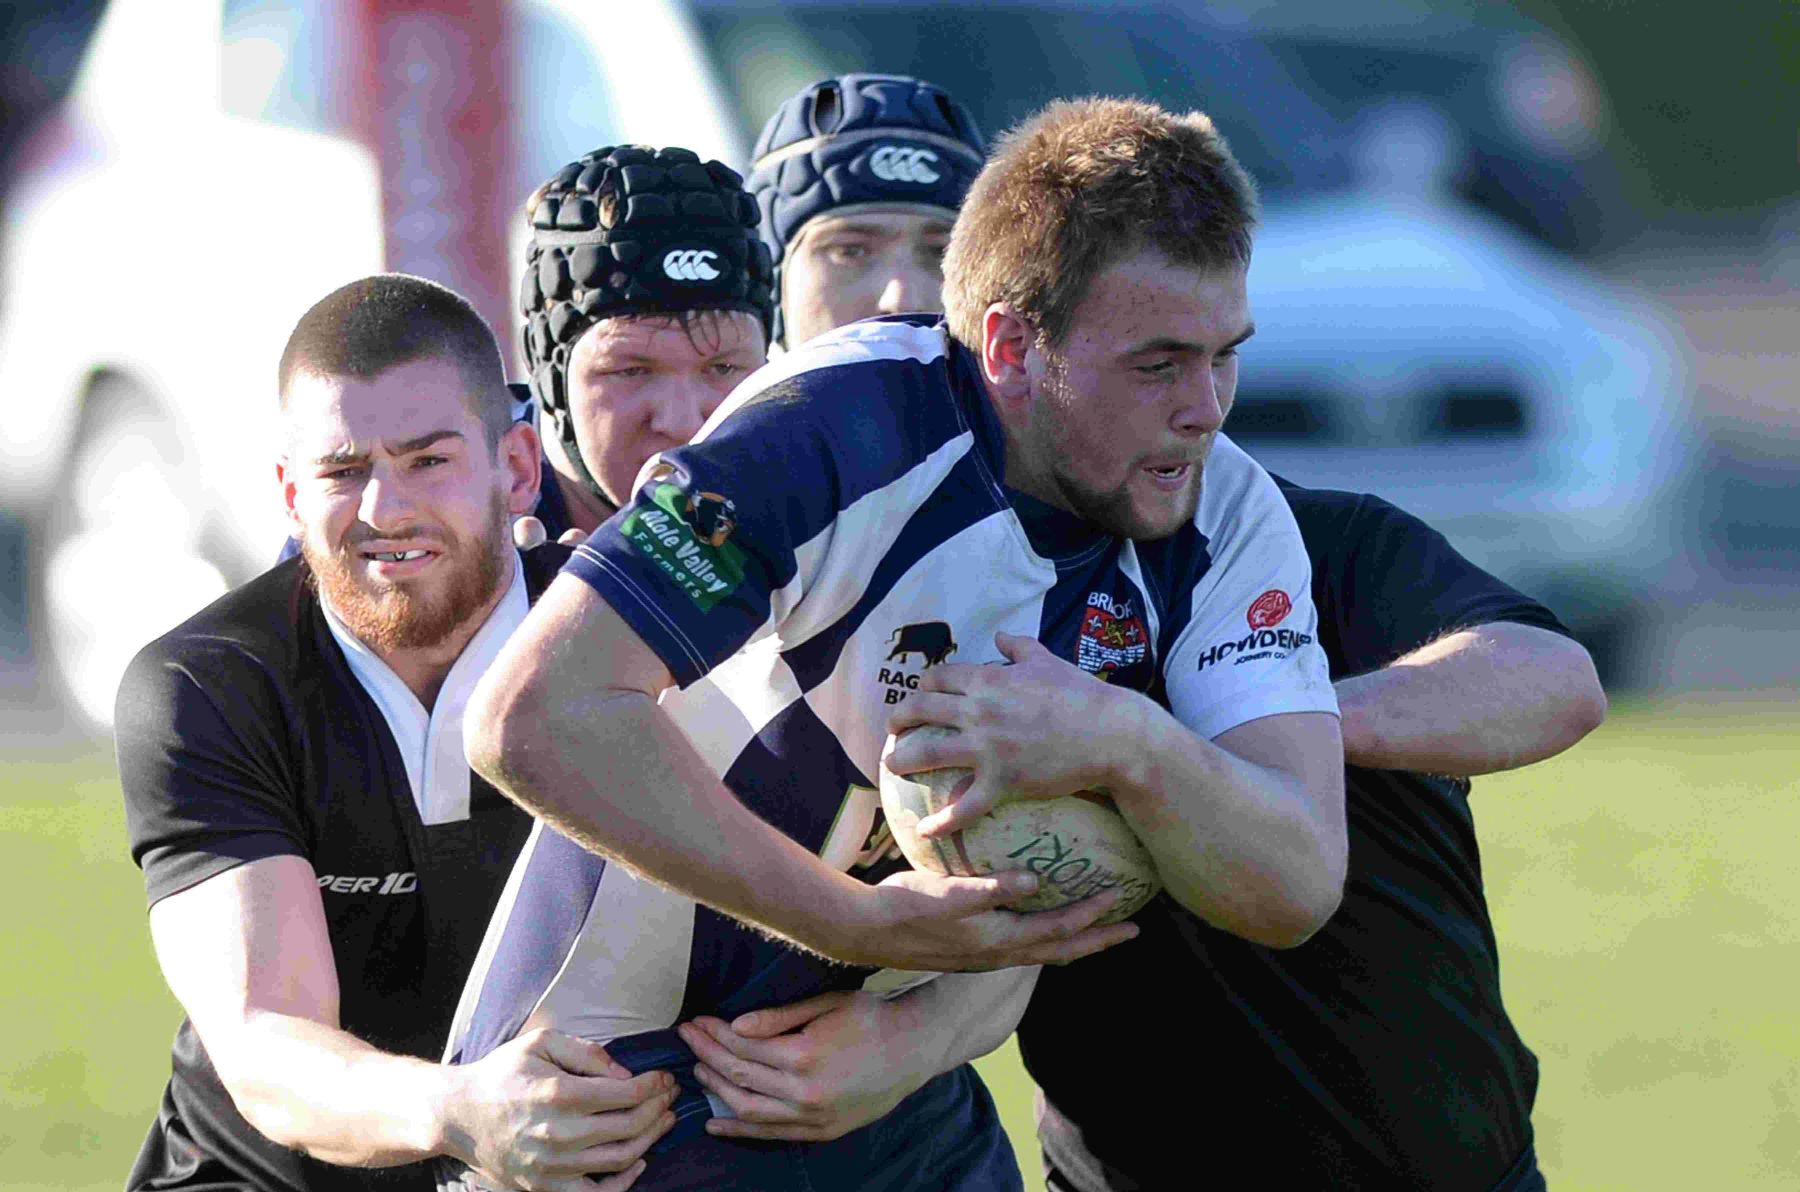 HOLDING ON: Bridport's Darragh McCloghlin